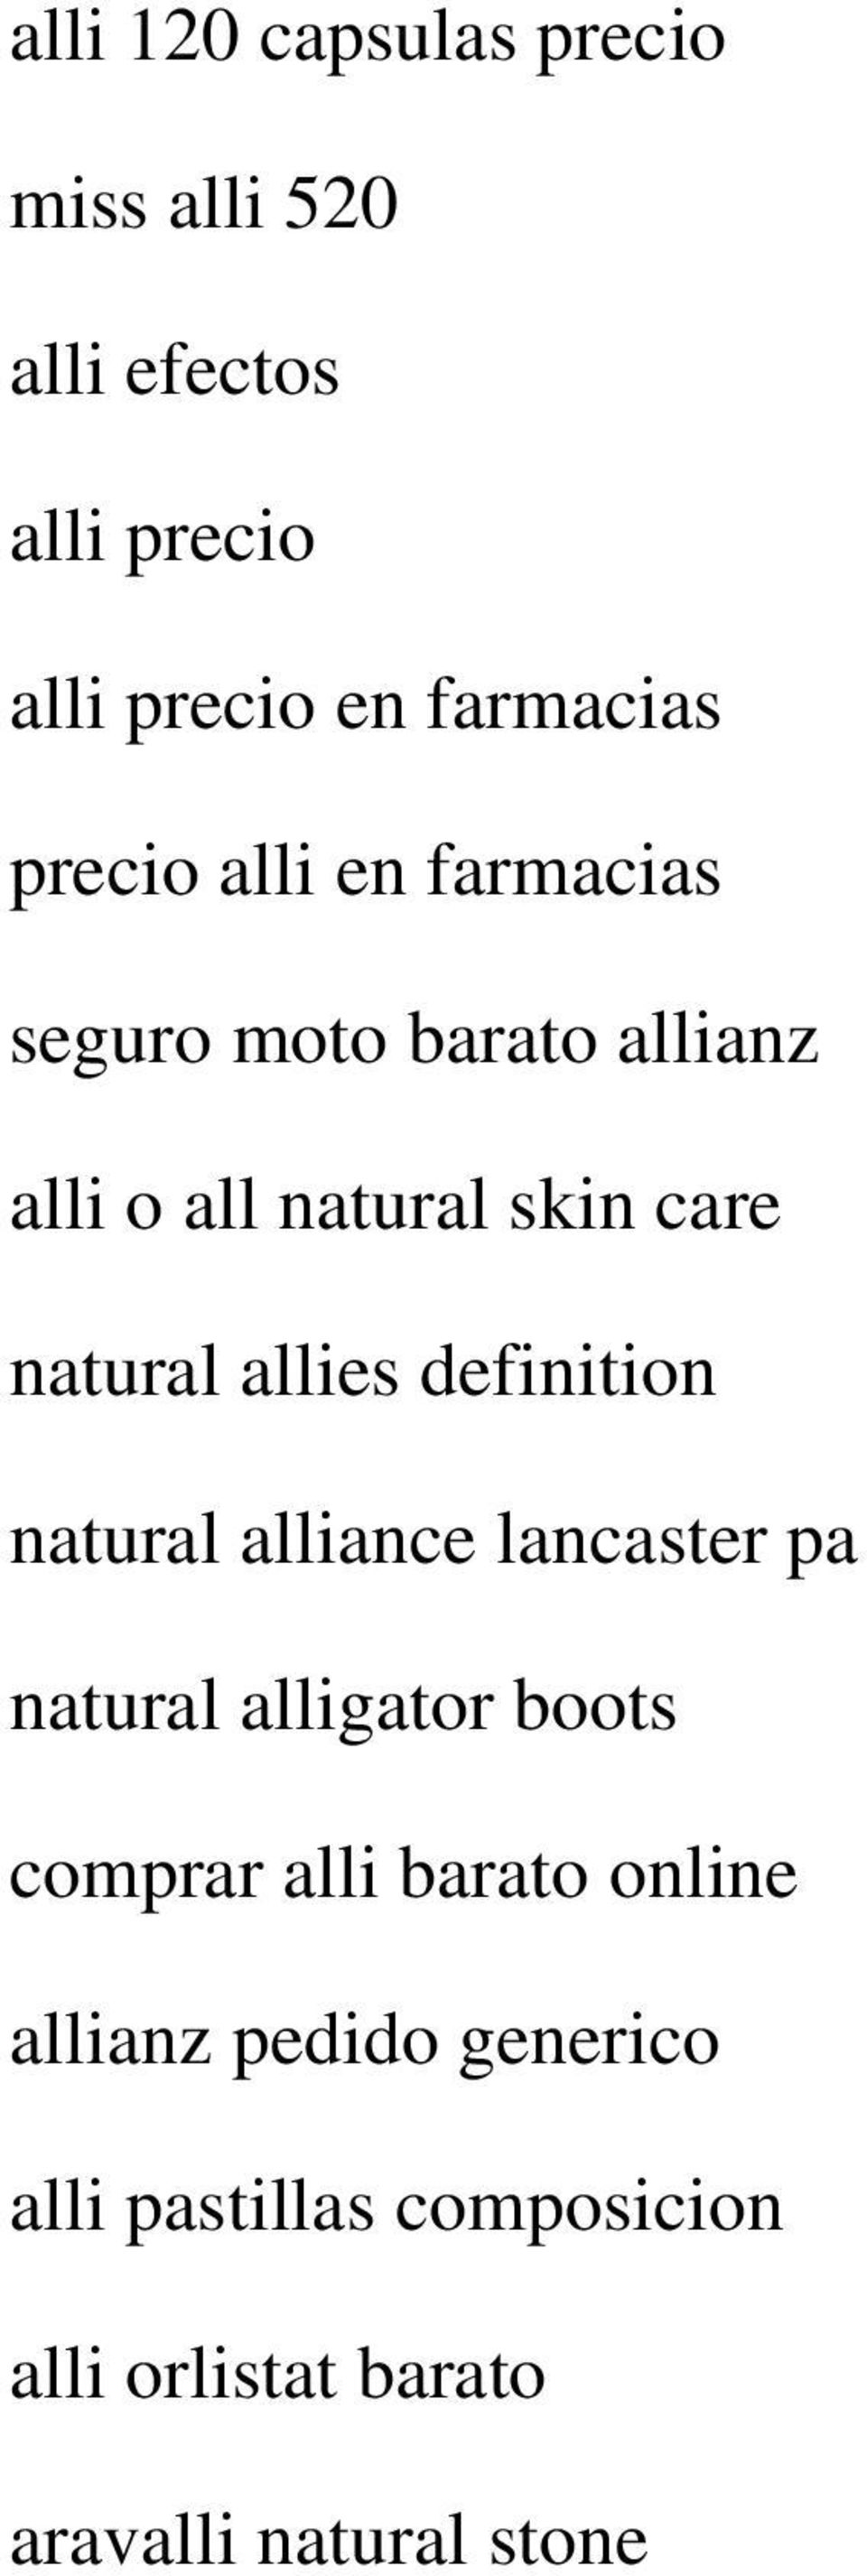 allies definition natural alliance lancaster pa natural alligator boots comprar alli barato